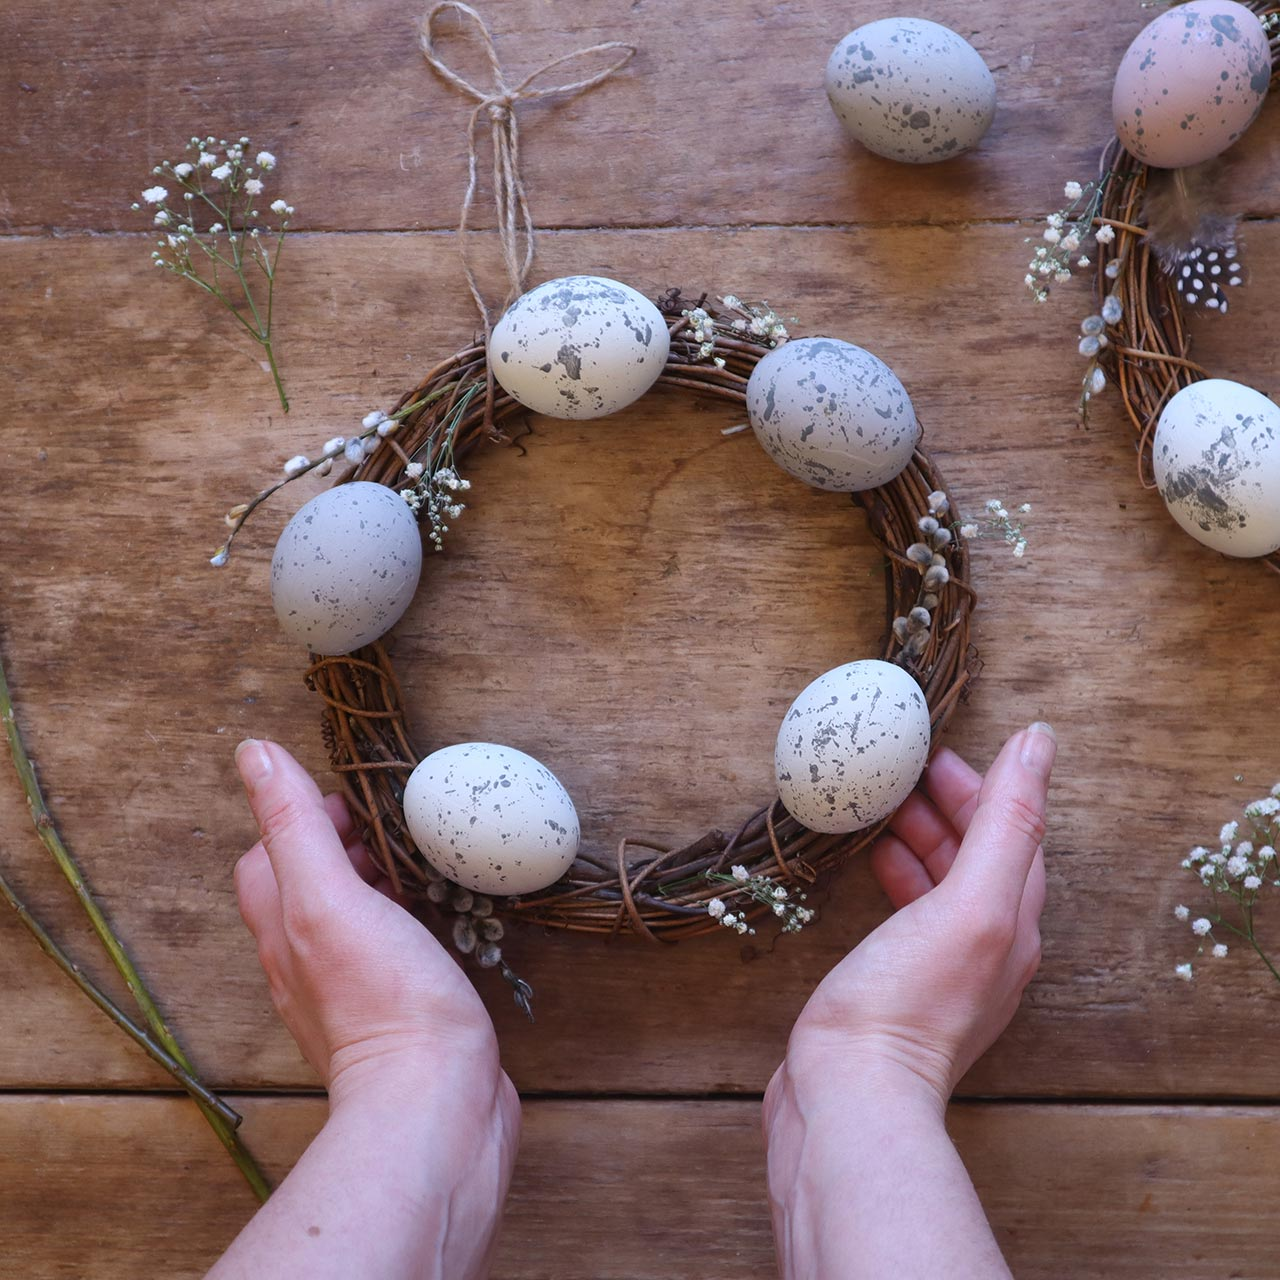 two hands holding a spring wreath made from twigs, flowers and eggs - a spring guide to hygge